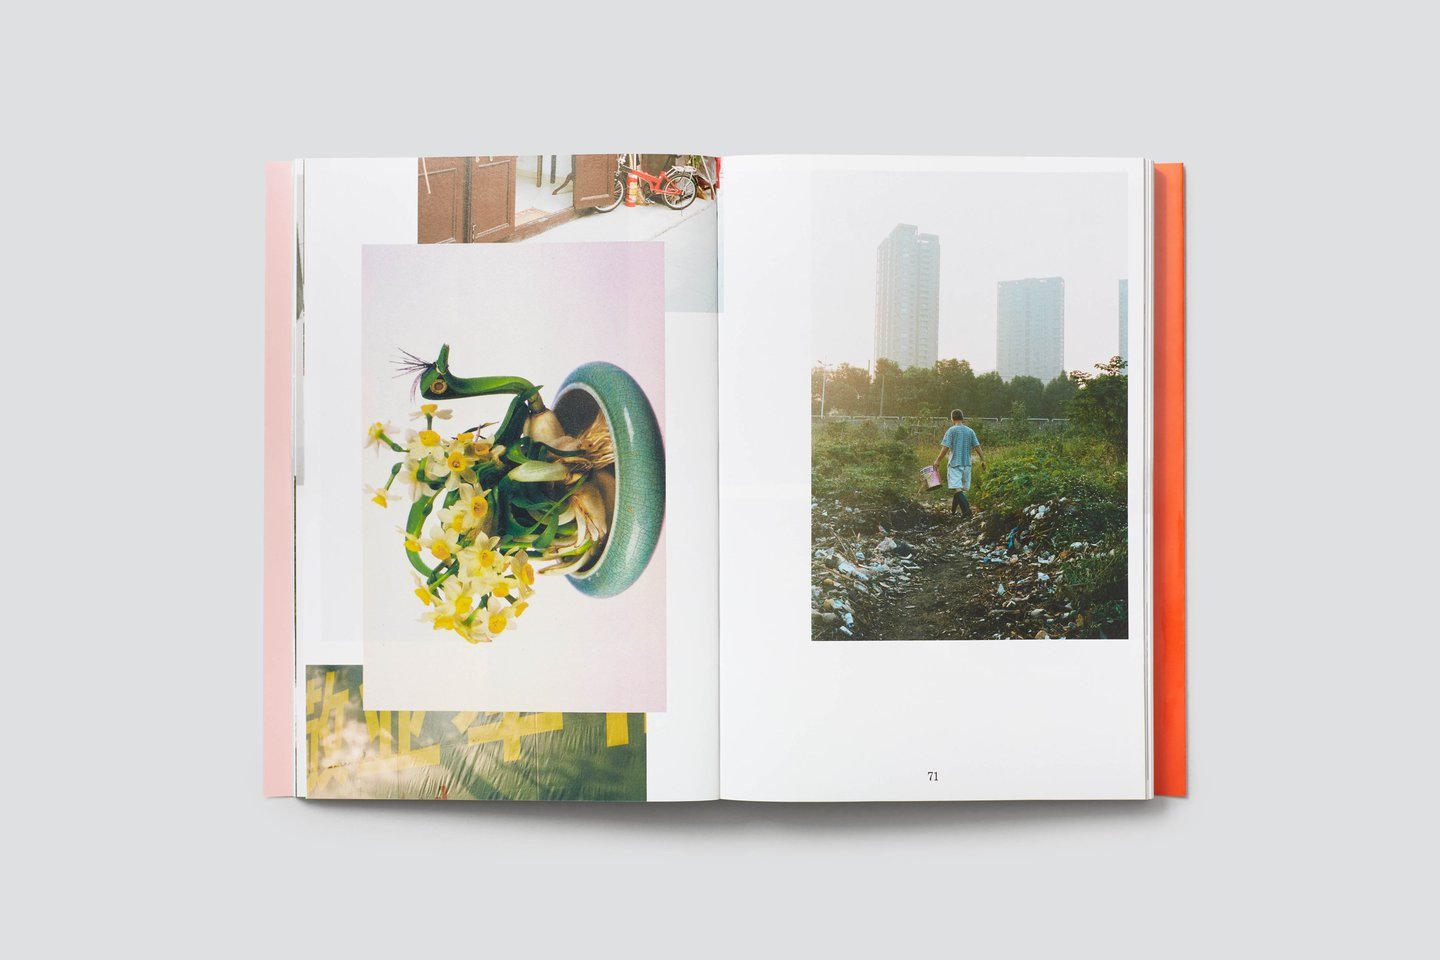 Michael Bodenmann's latest book creates a non-linear pictorial tapestry of his time in China